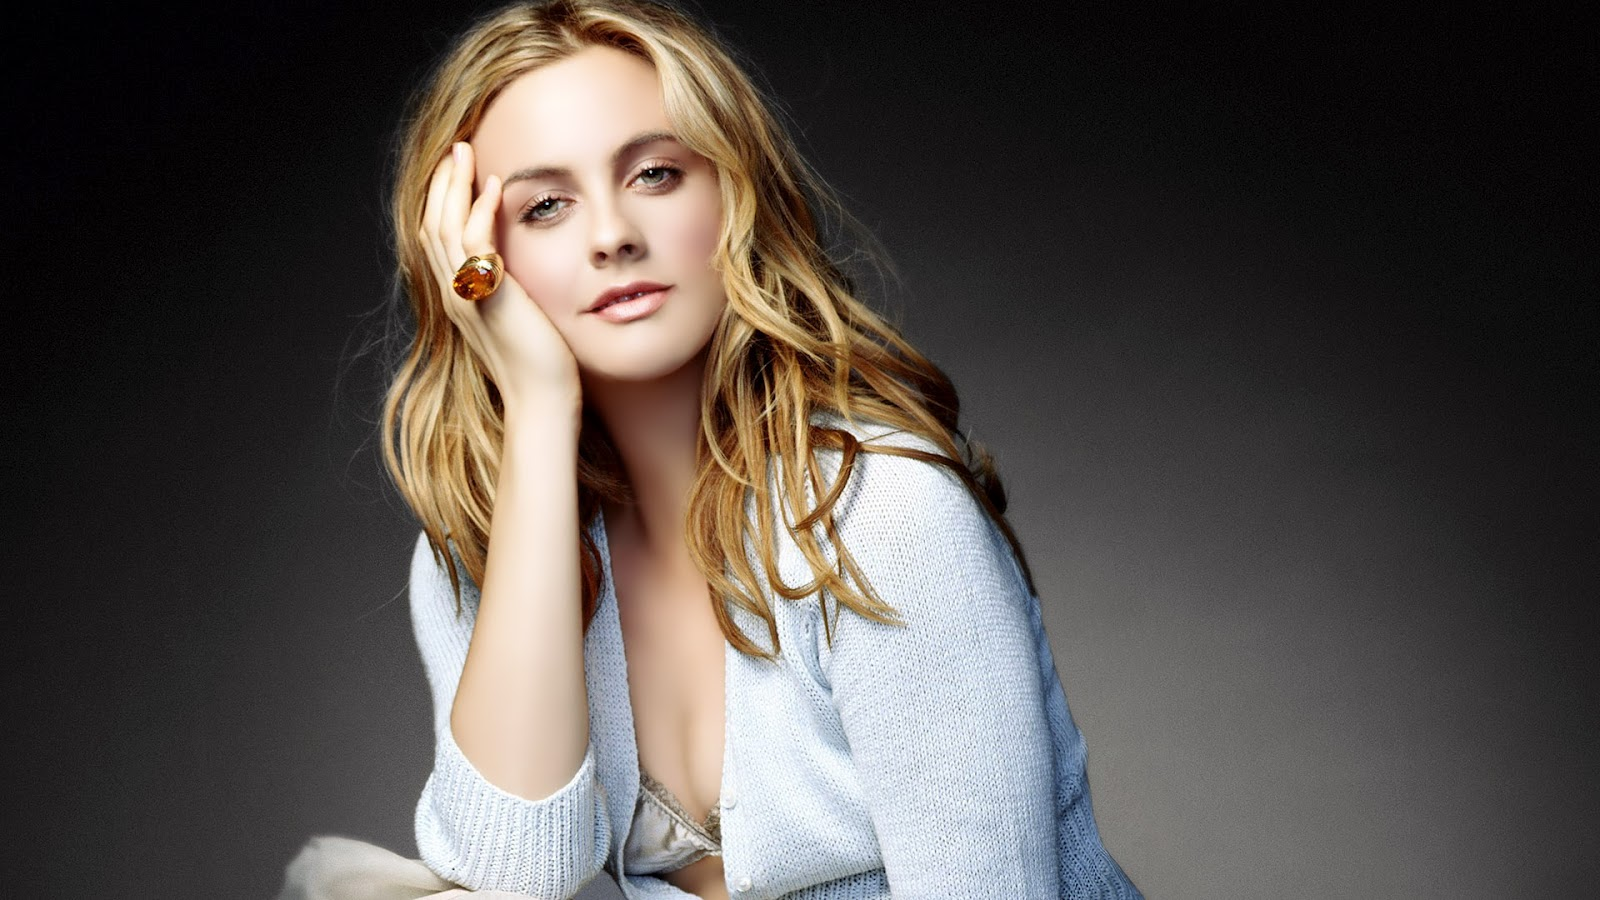 Cleavage Alicia Silverstone nudes (68 foto and video), Tits, Leaked, Feet, braless 2019